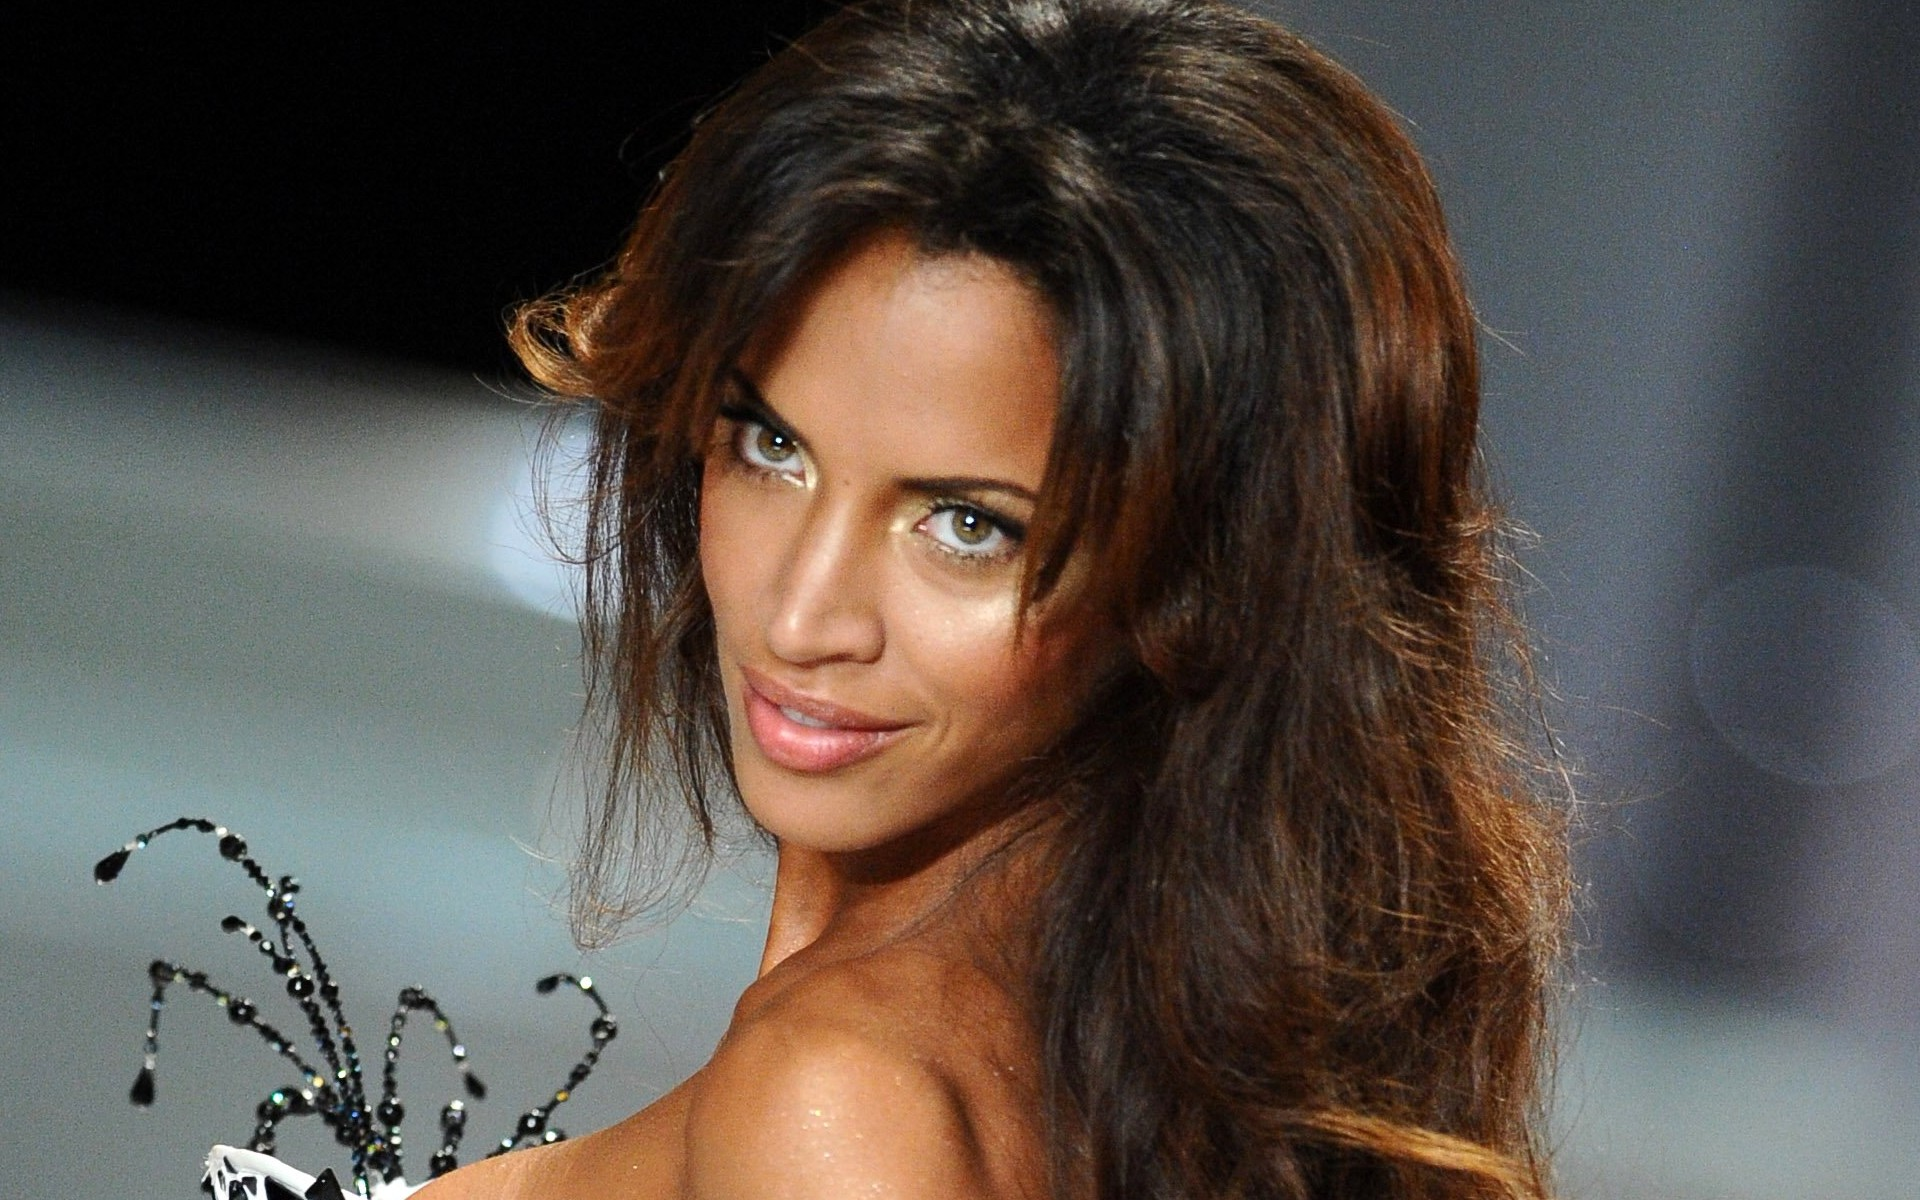 Classify half french half madagascan supermodel noemie lenoir classify half french half madagascan supermodel noemie lenoir archive the apricity forum a european cultural community sciox Image collections